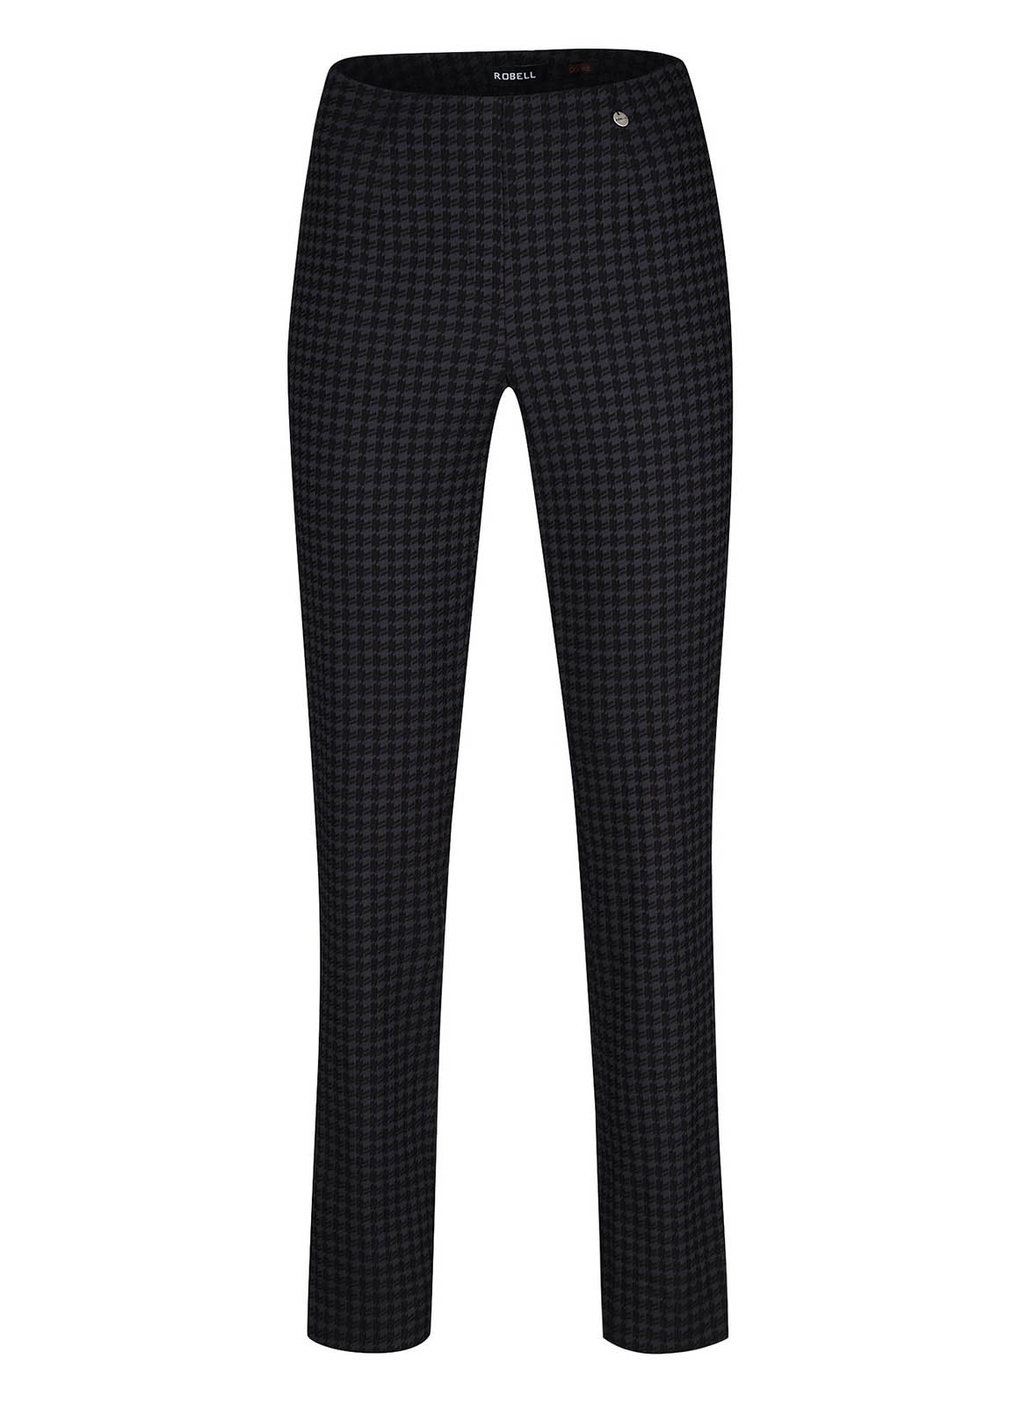 Robell Marie Houndstooth Trousers in Black